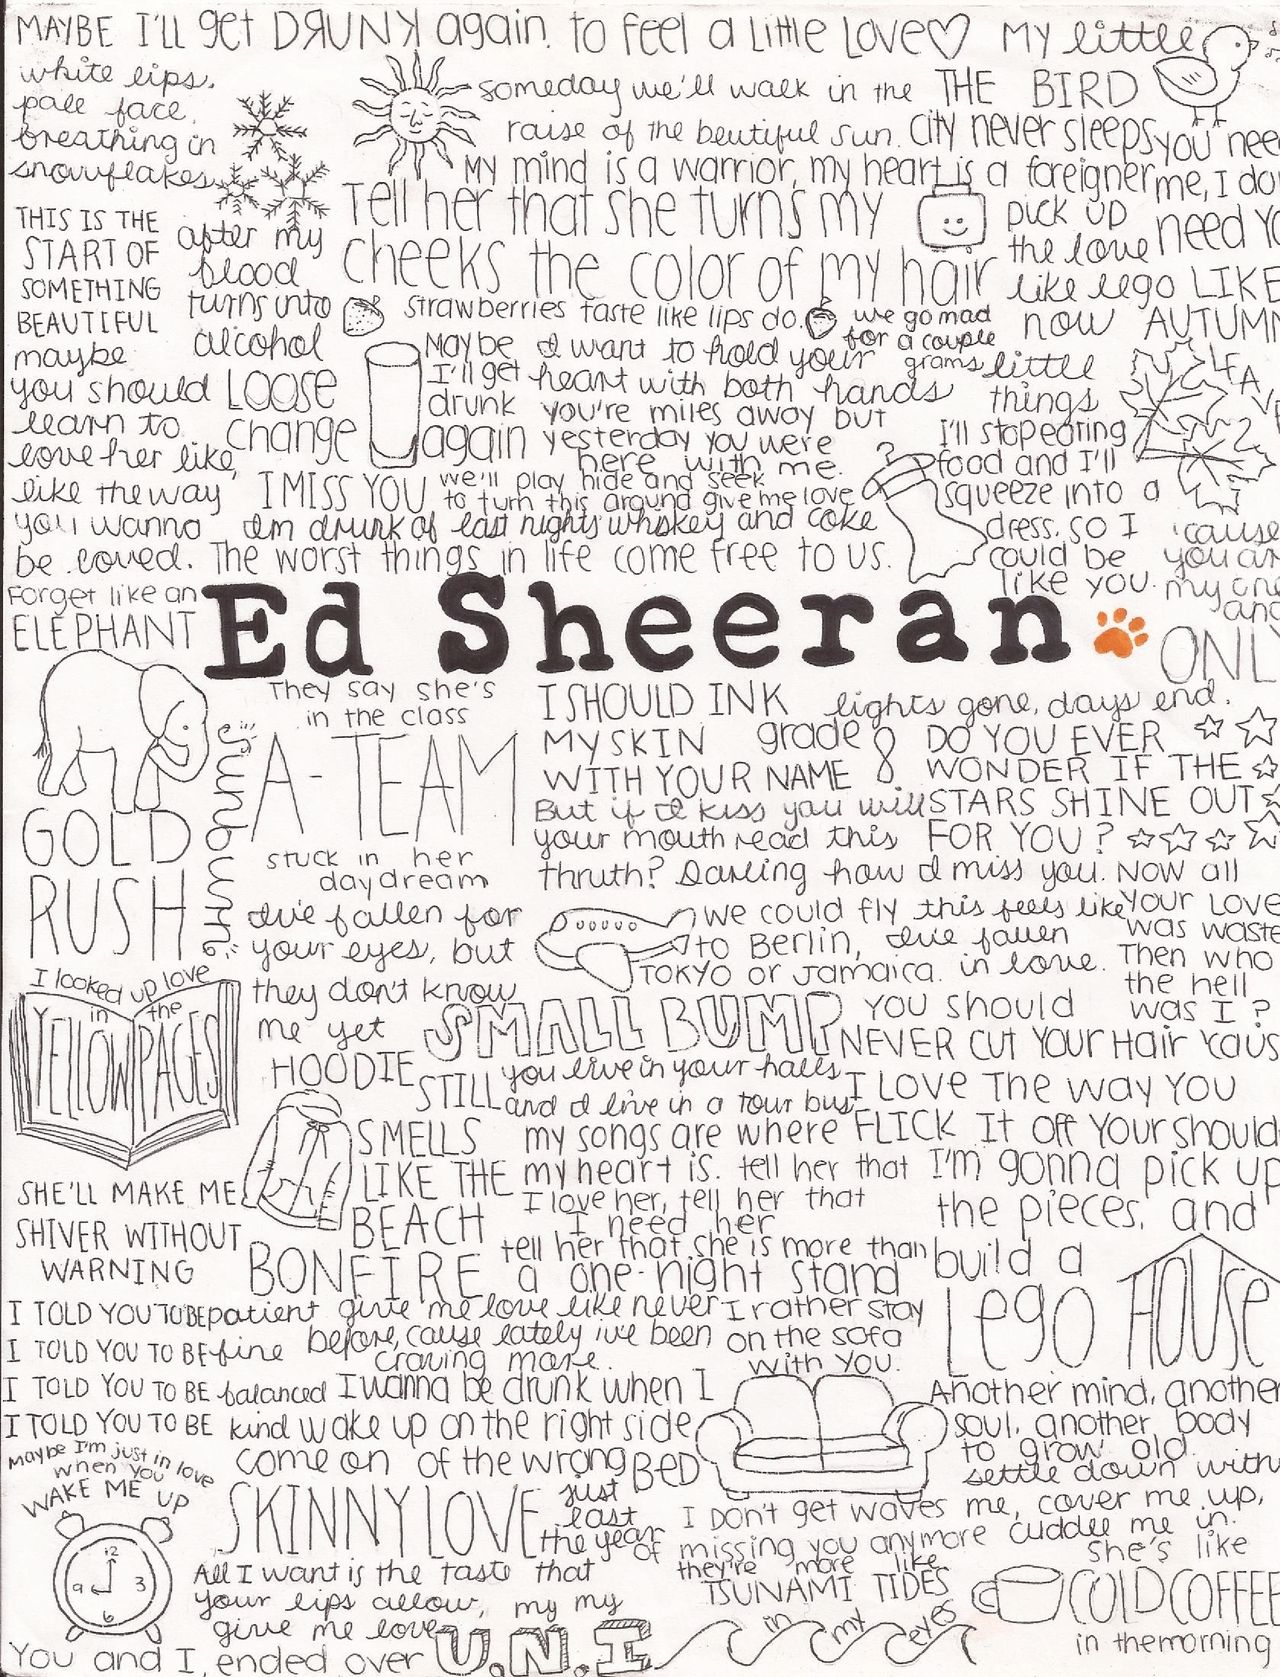 EdSheeran | Live and Let Live | Pinterest | Lyric art, Songs and ...